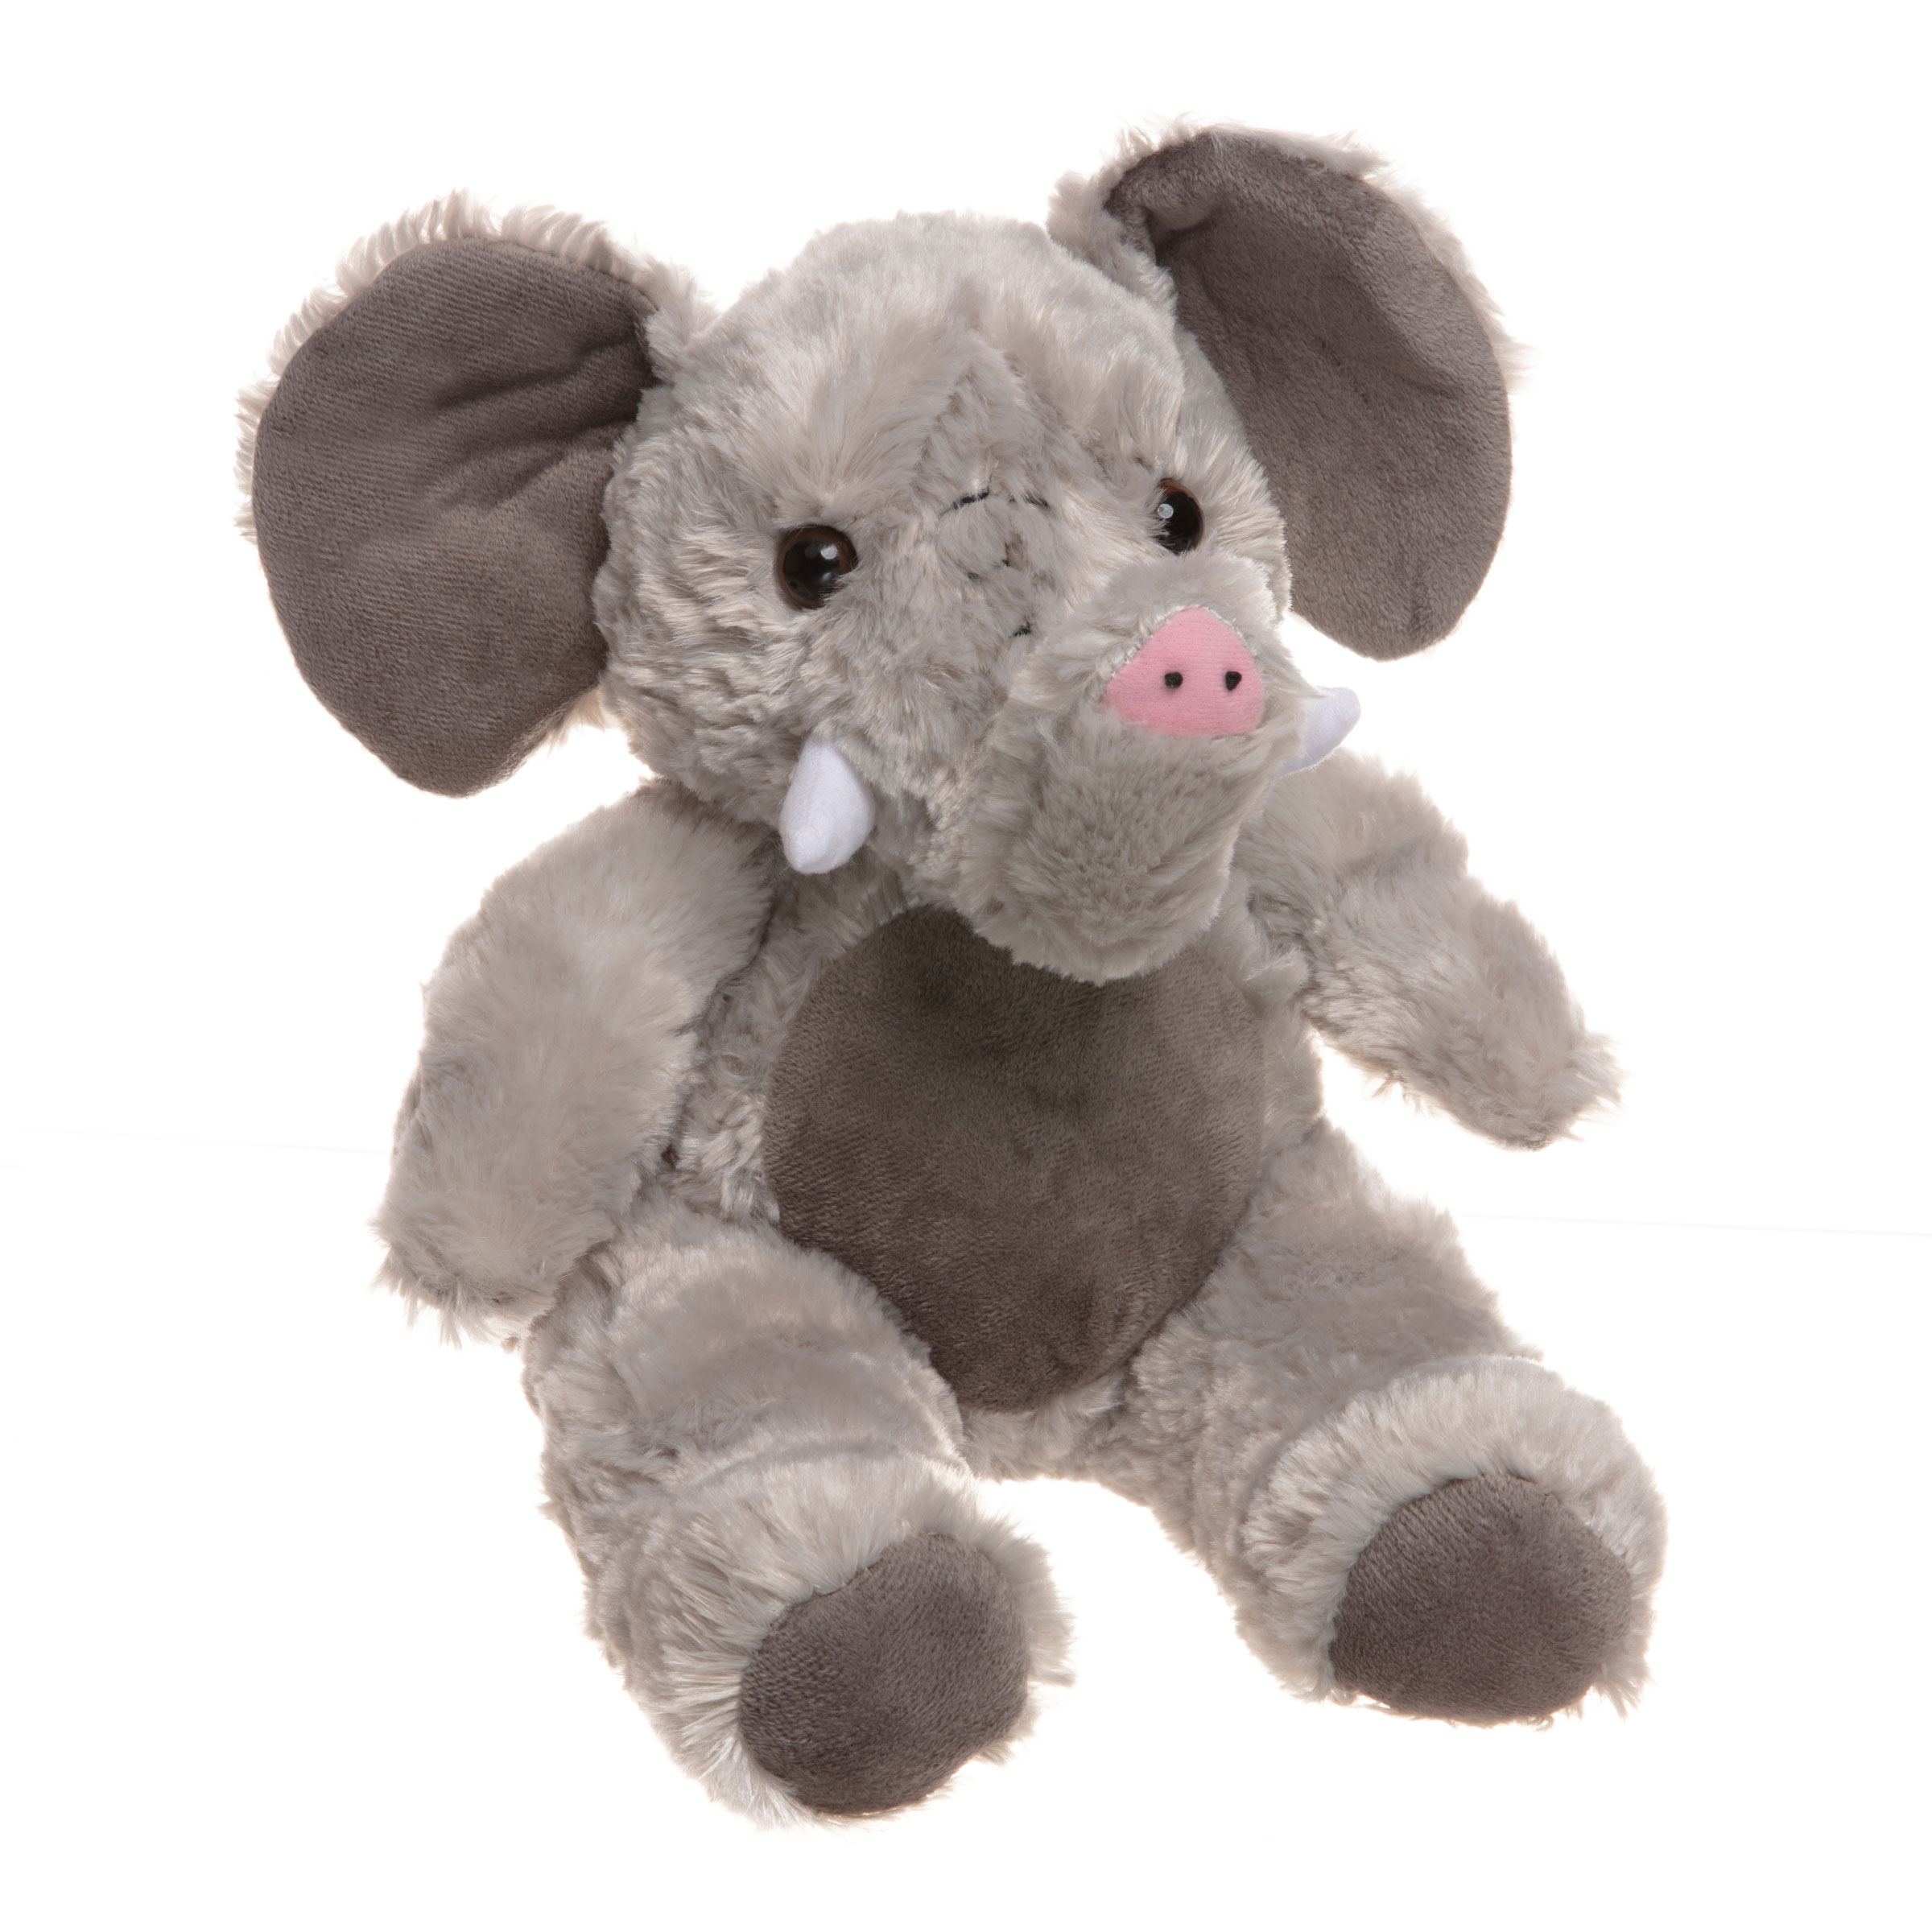 Peanut the Elephant Teddy Bear